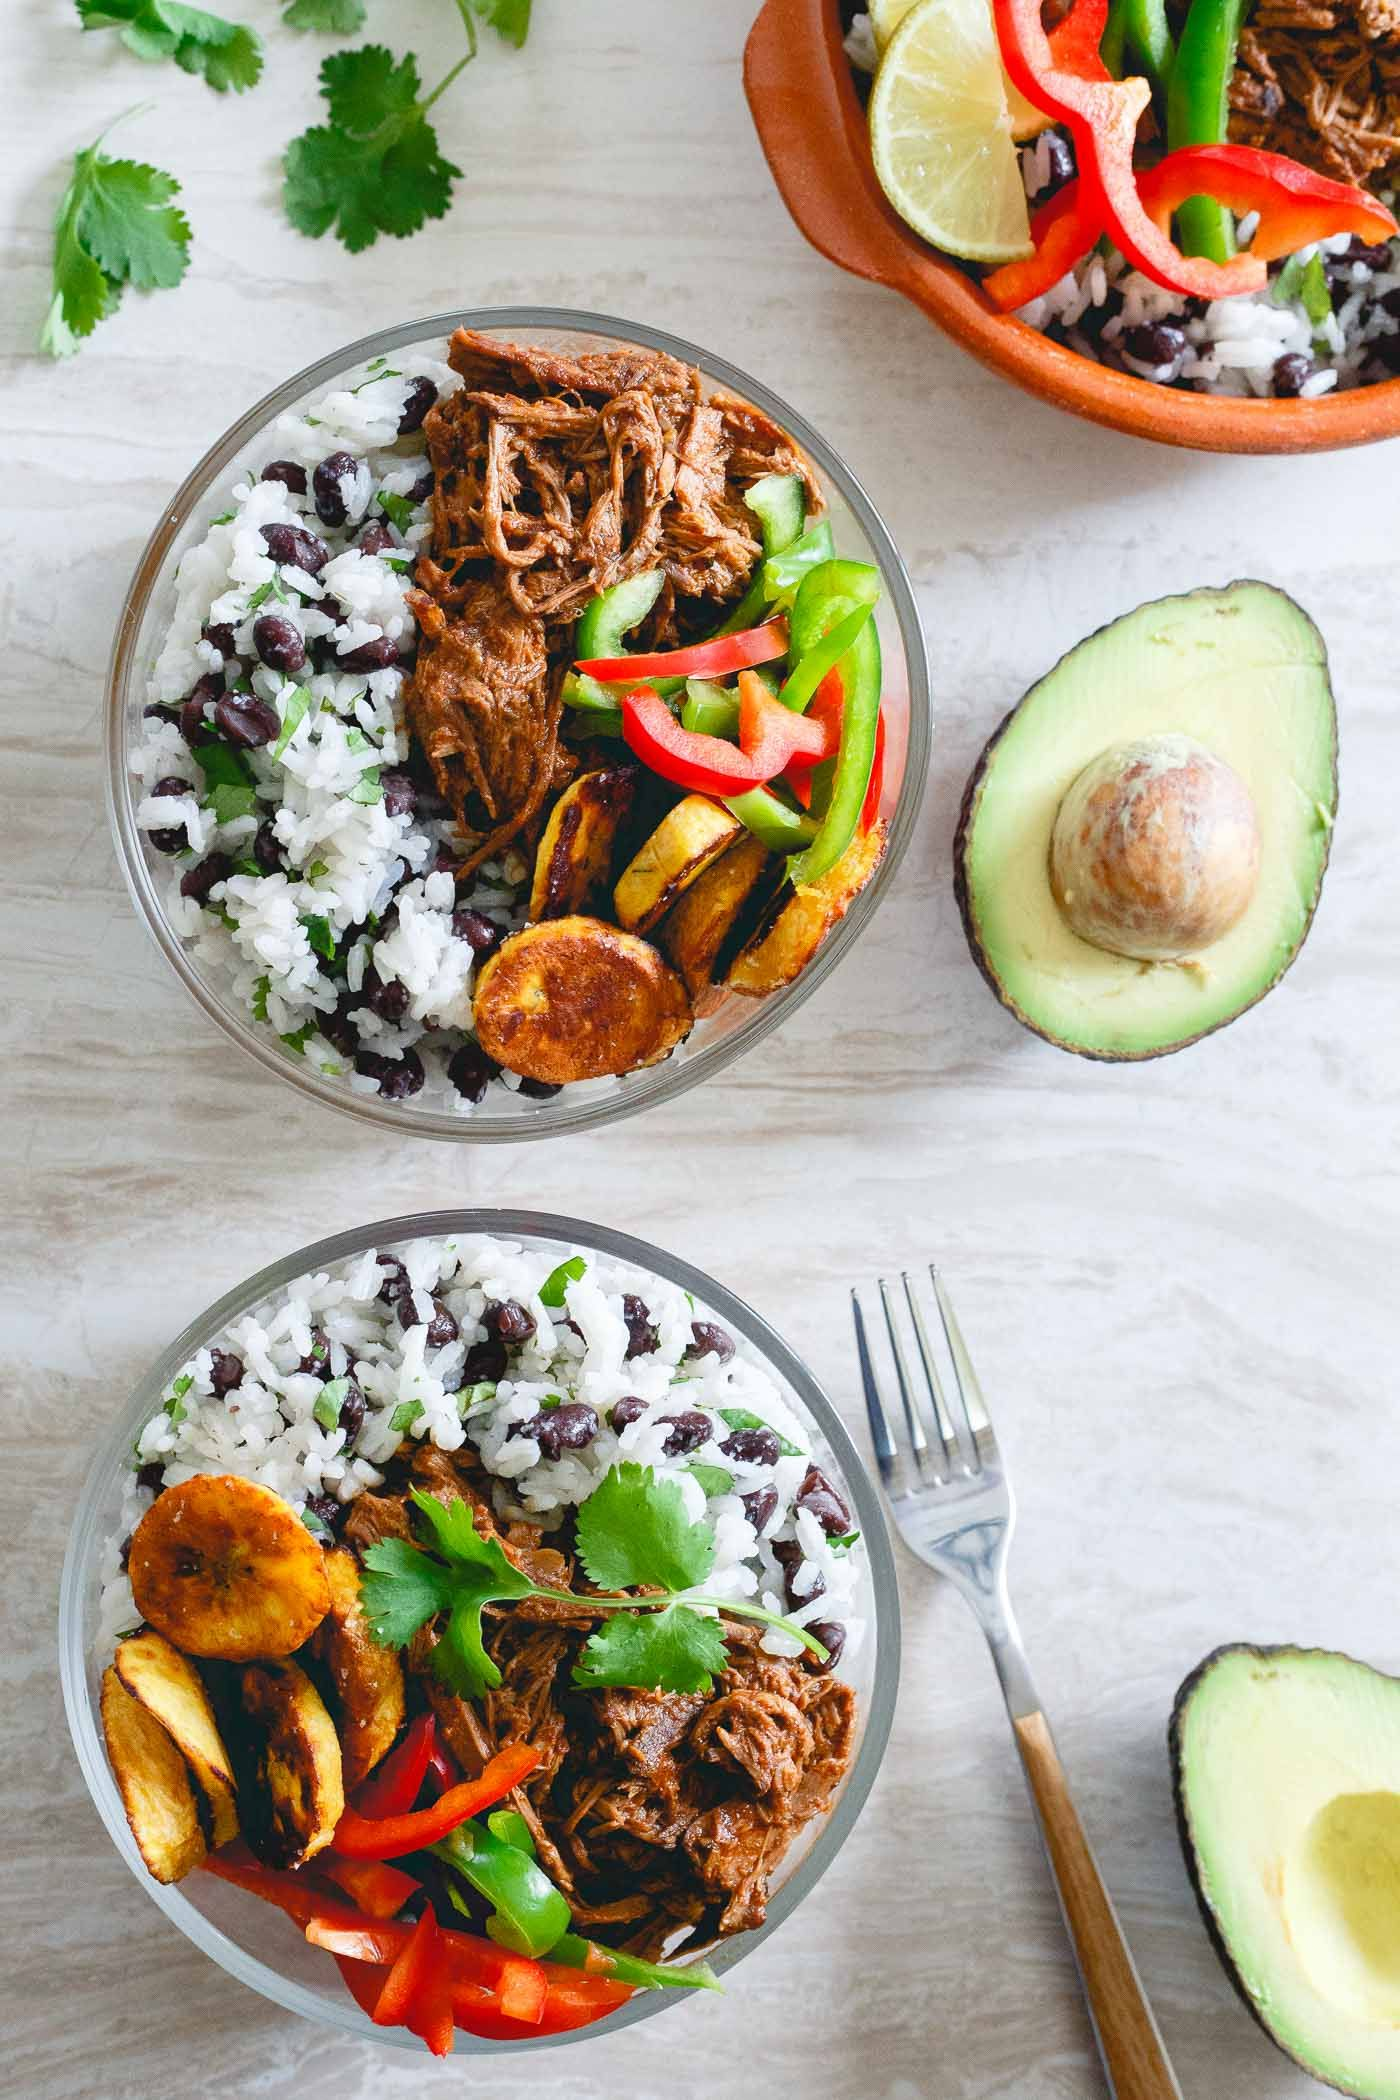 Our favorite food bloggers share their best healthy slow cooker our favorite food bloggers share their best healthy slow cooker recipes httphelloglowbest healthy slow cooker recipes forumfinder Image collections